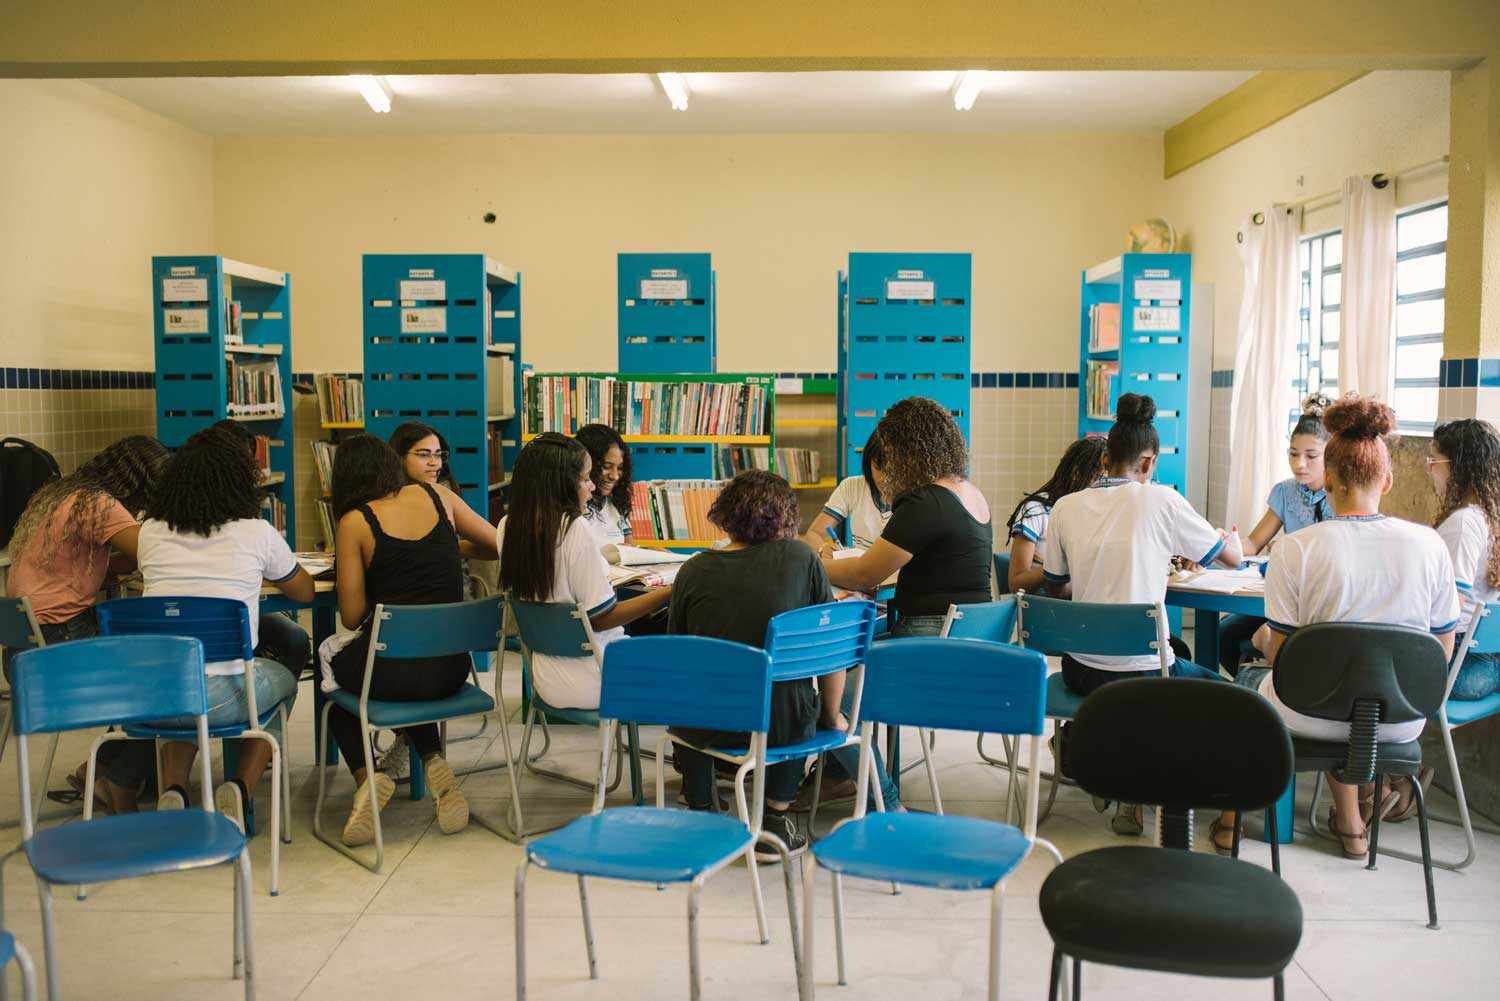 Young women sit in a classroom in groups on blue chairs.